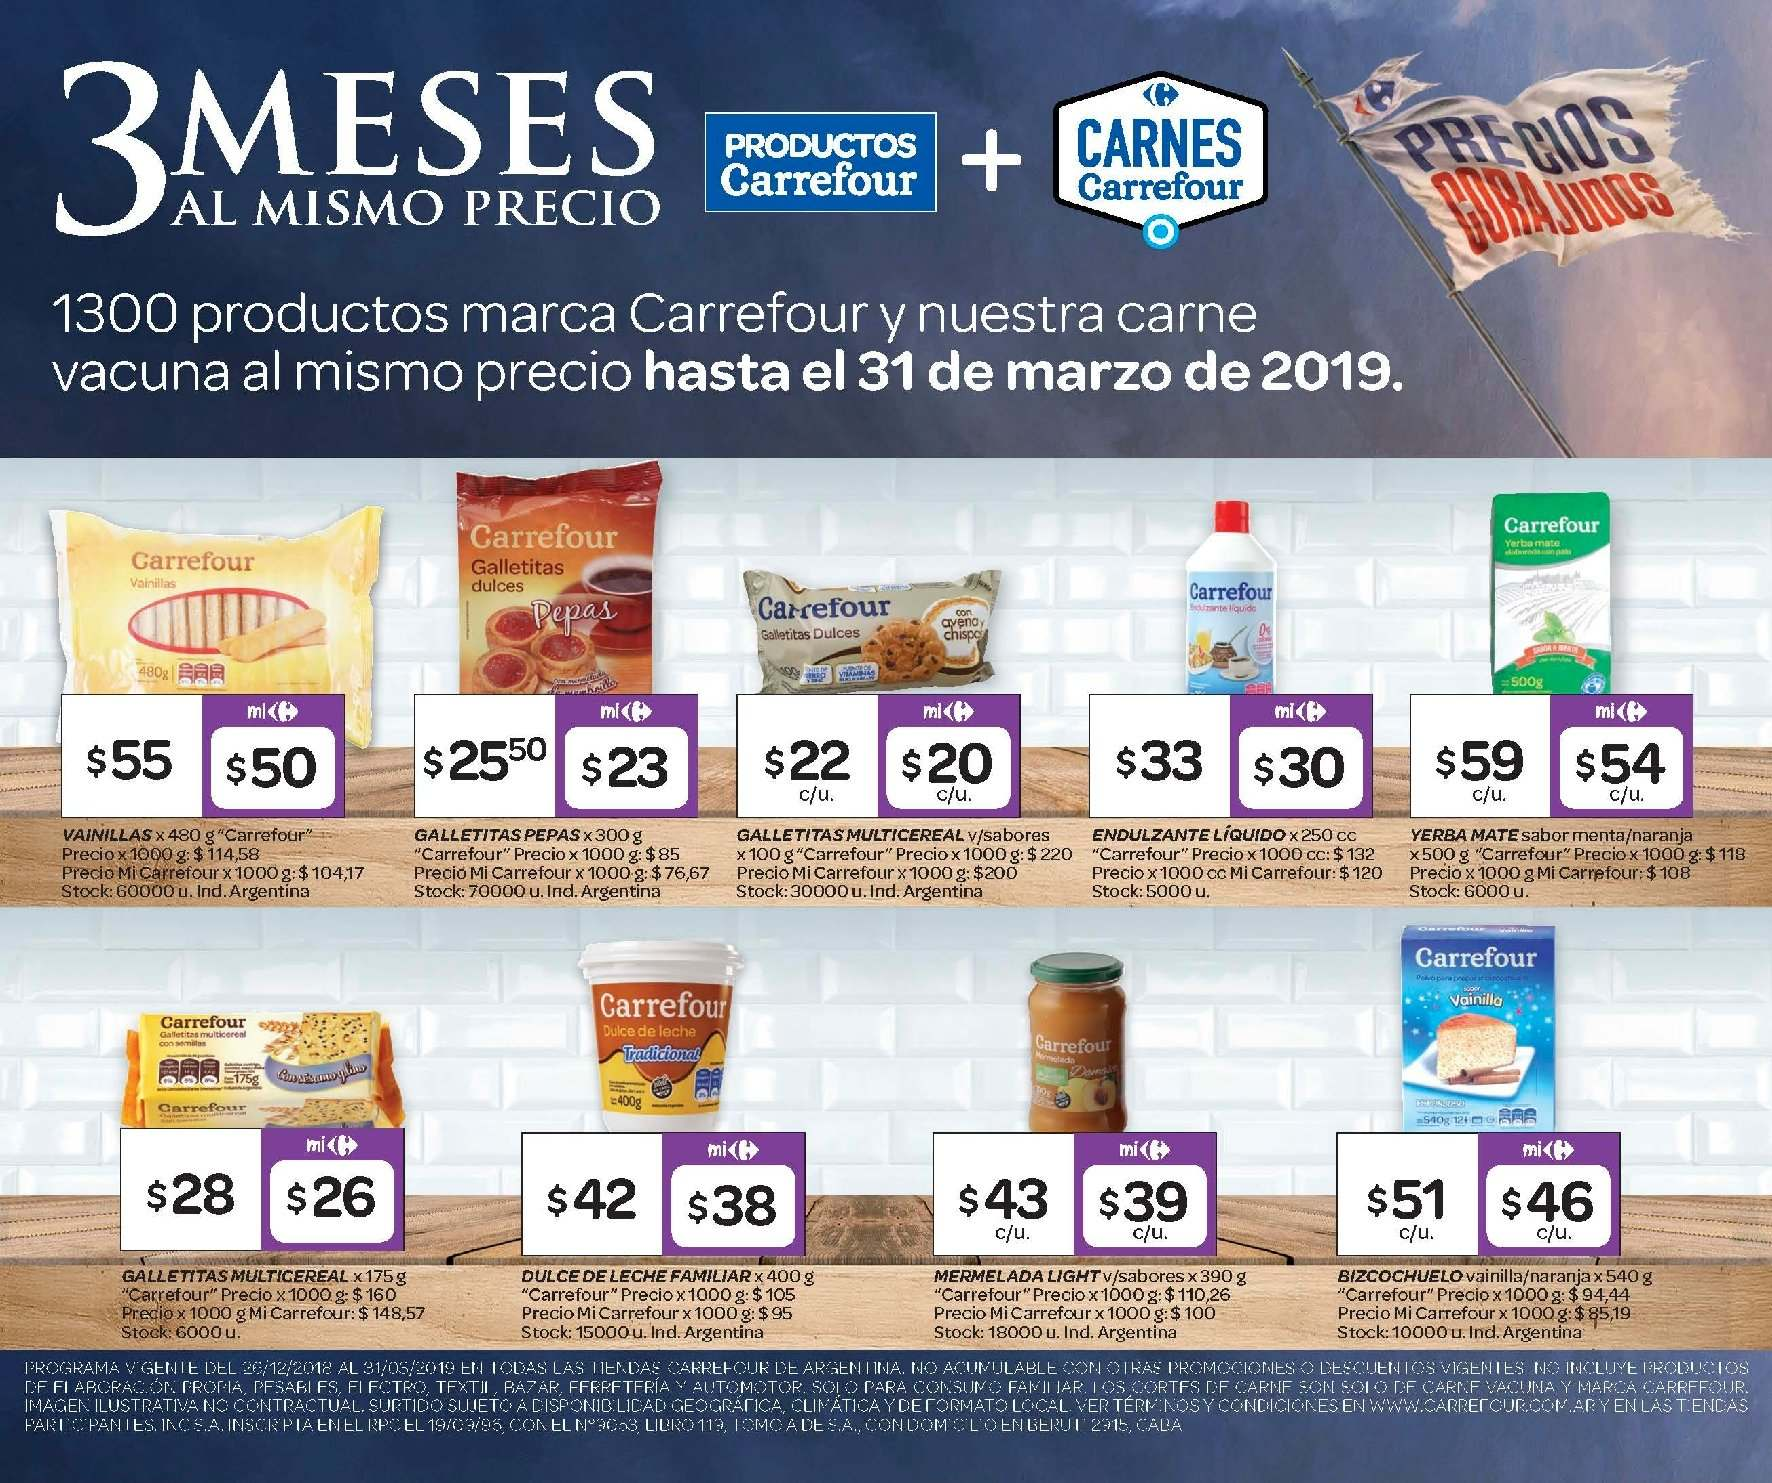 Folleto actual Carrefour - 7.2.2019 - 11.2.2019 - Ventas - leche 34140633bec7